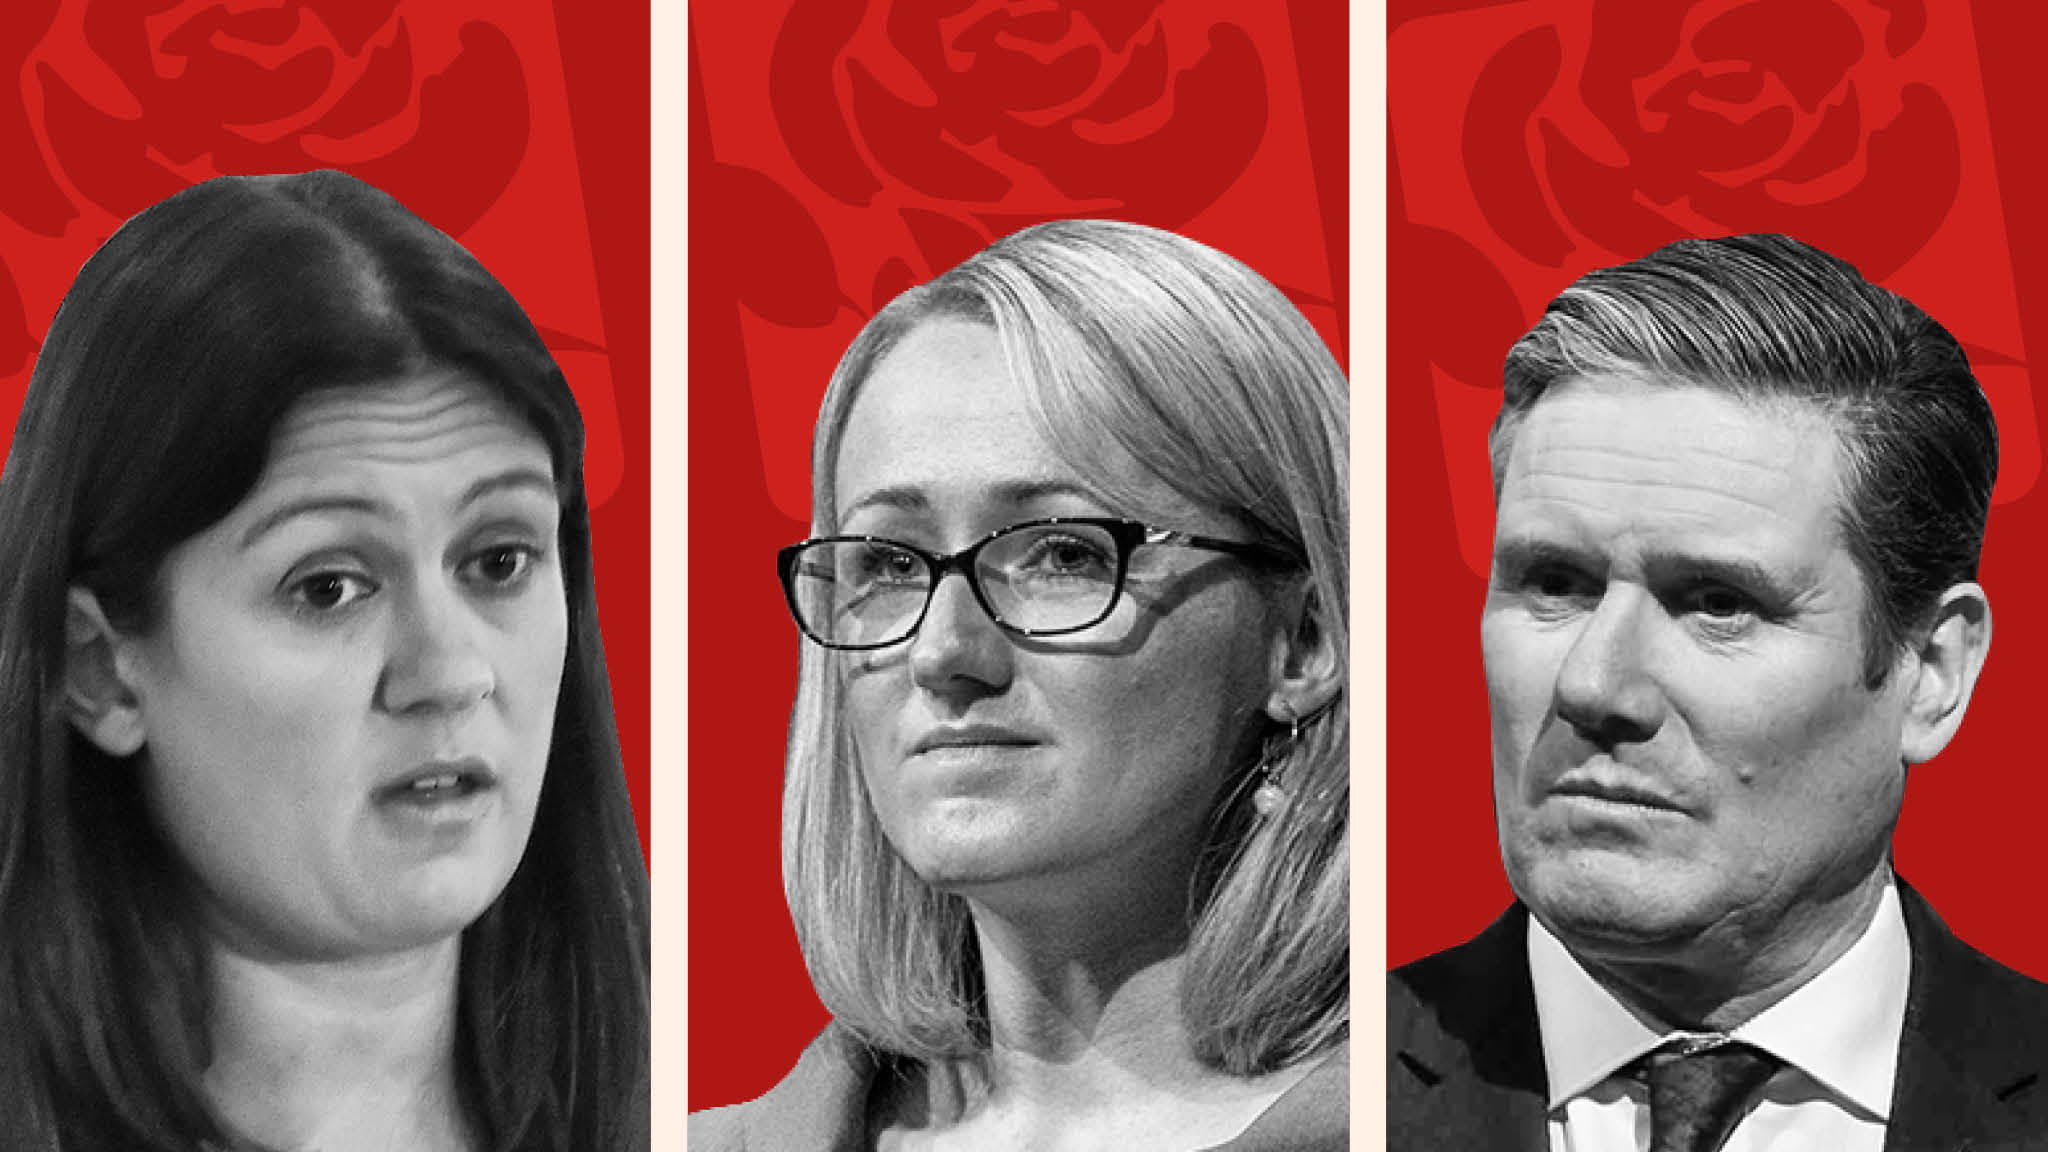 Lisa Nandy, Rebecca Long Bailey and Keir Starmer made it through to the final round of the Labour leadership contest